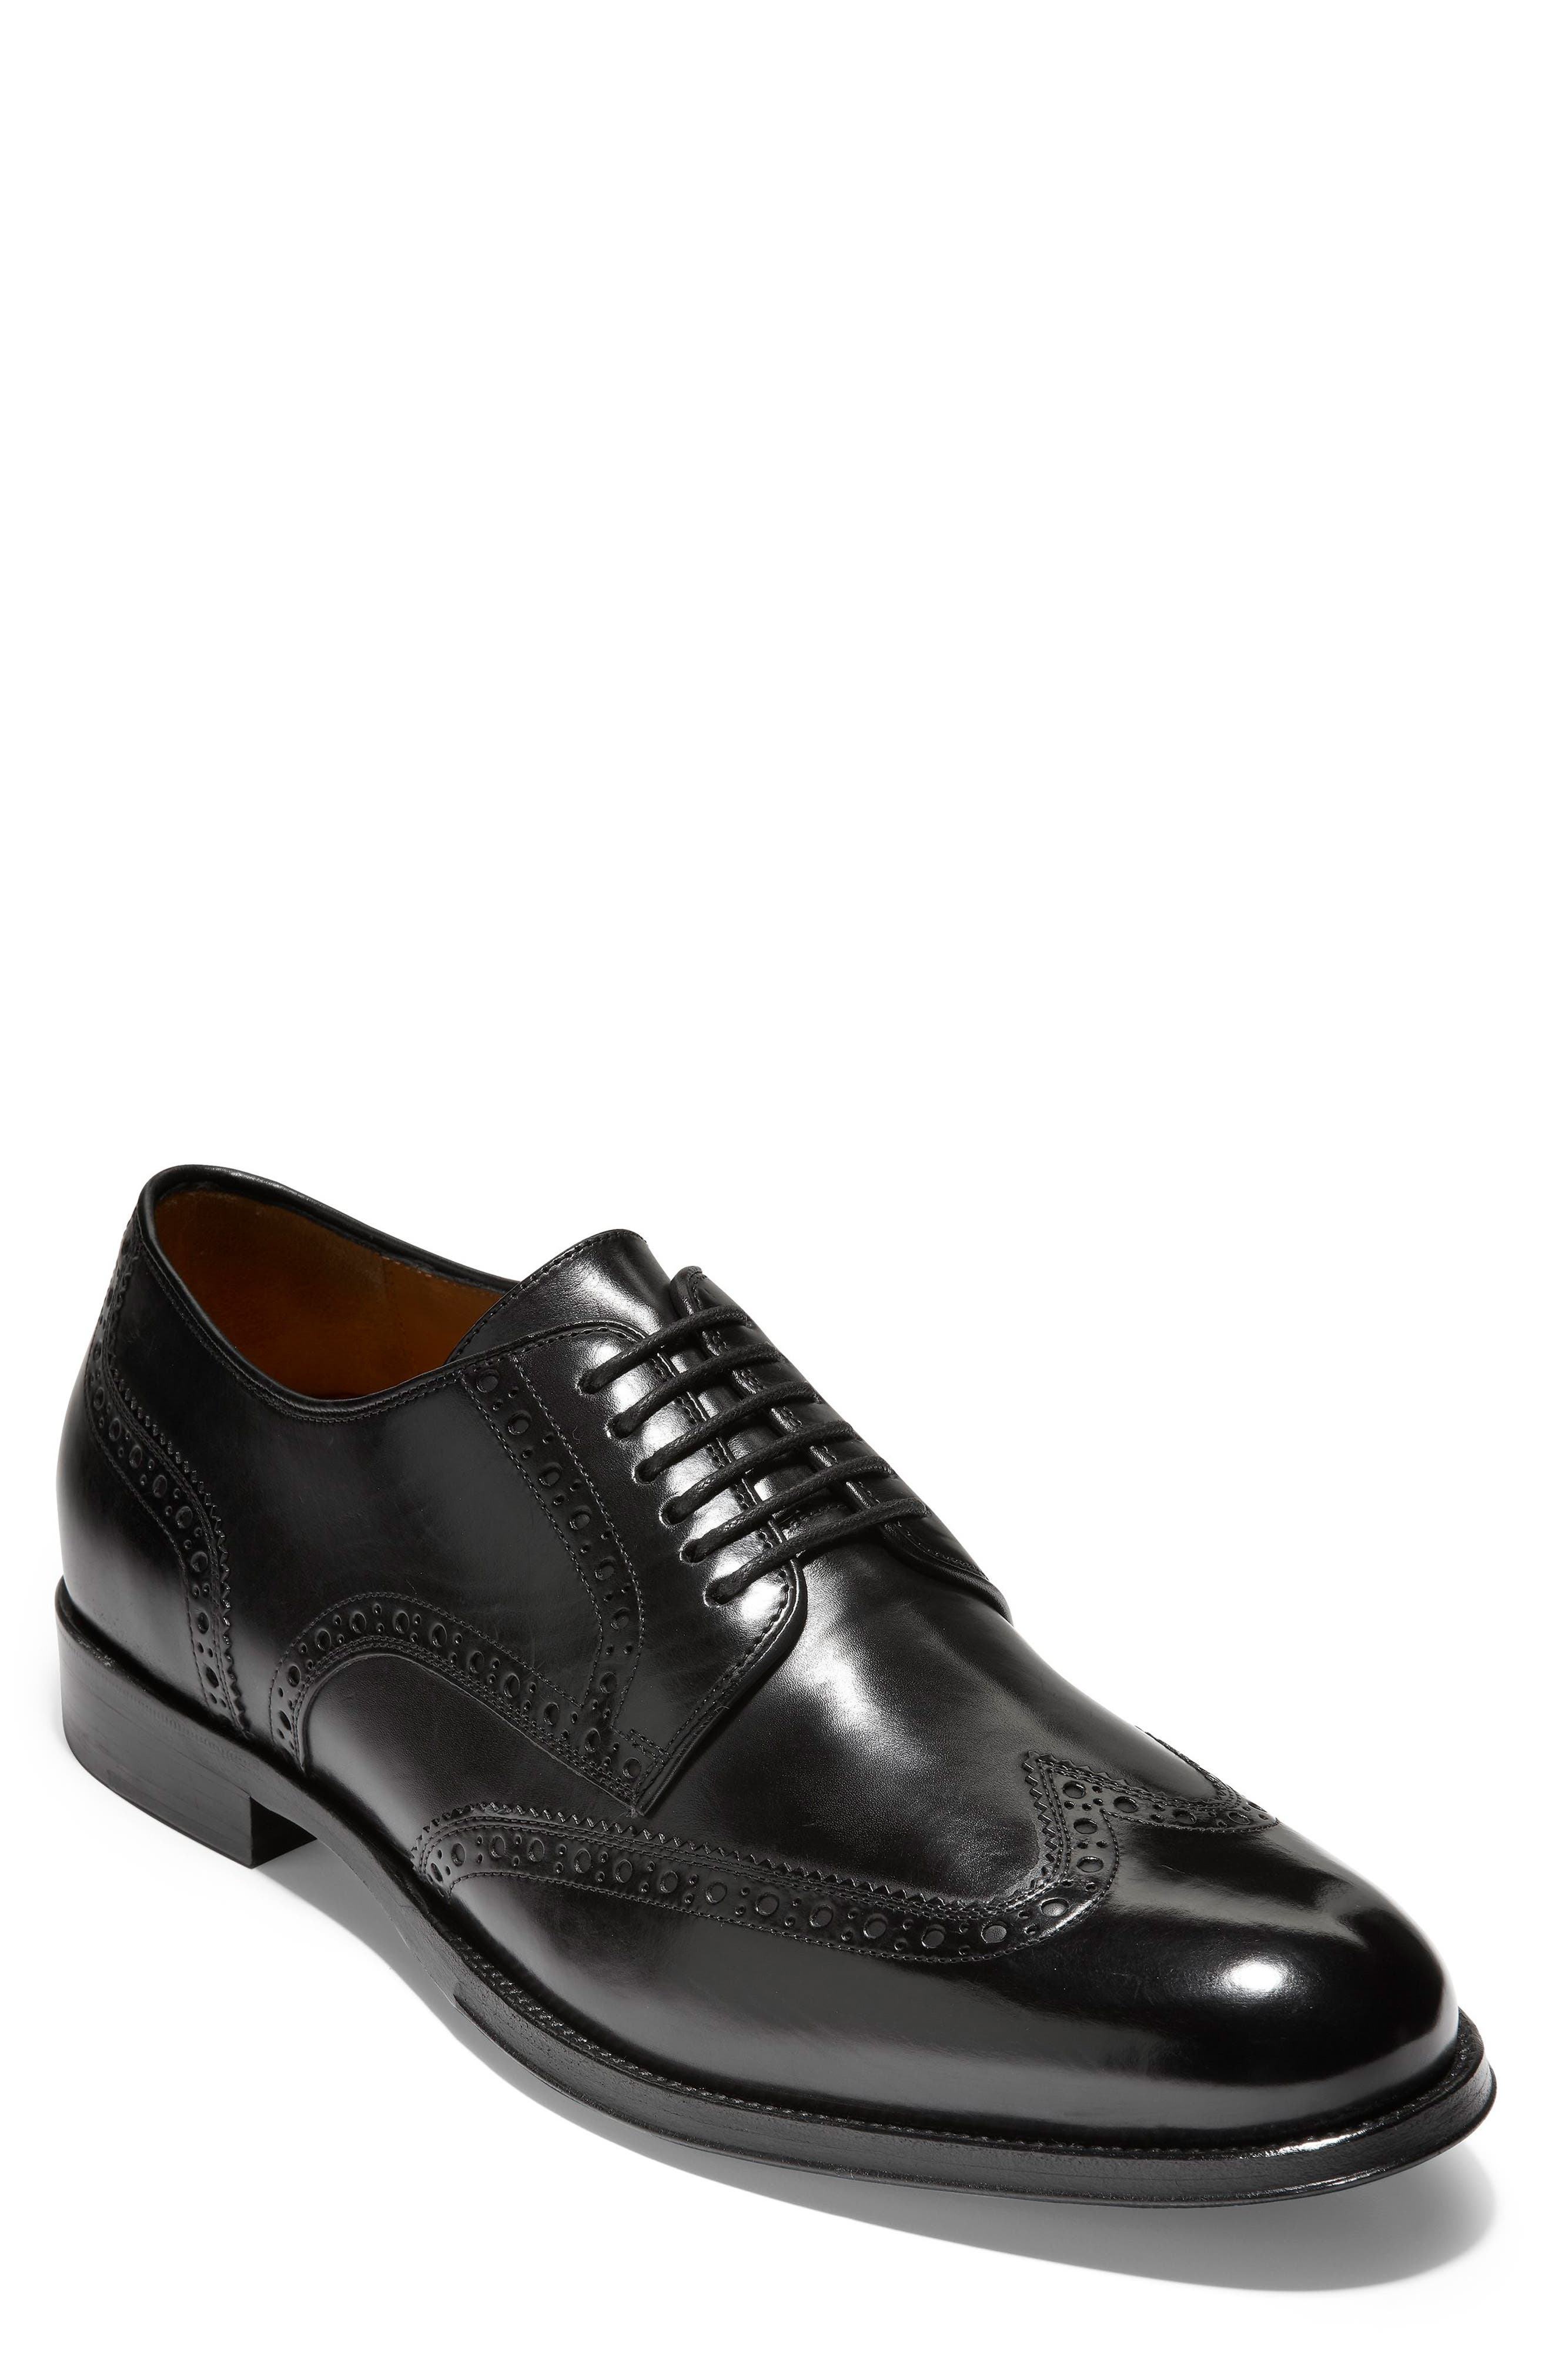 American Classics Grammercy Wingtip,                             Main thumbnail 1, color,                             BLACK LEATHER